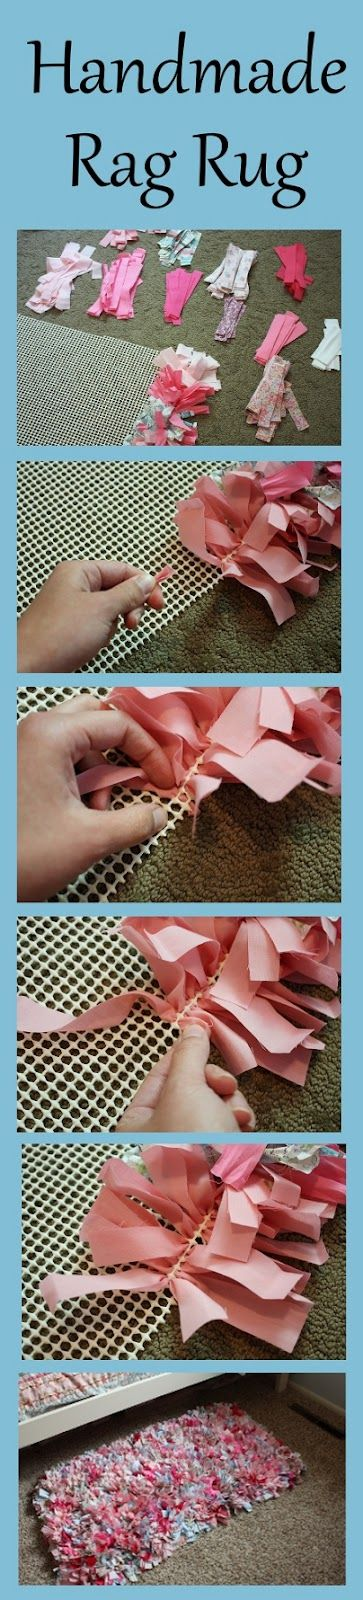 Handmade rag rug tutorial! Perfect use for scrap fabric! What a cute